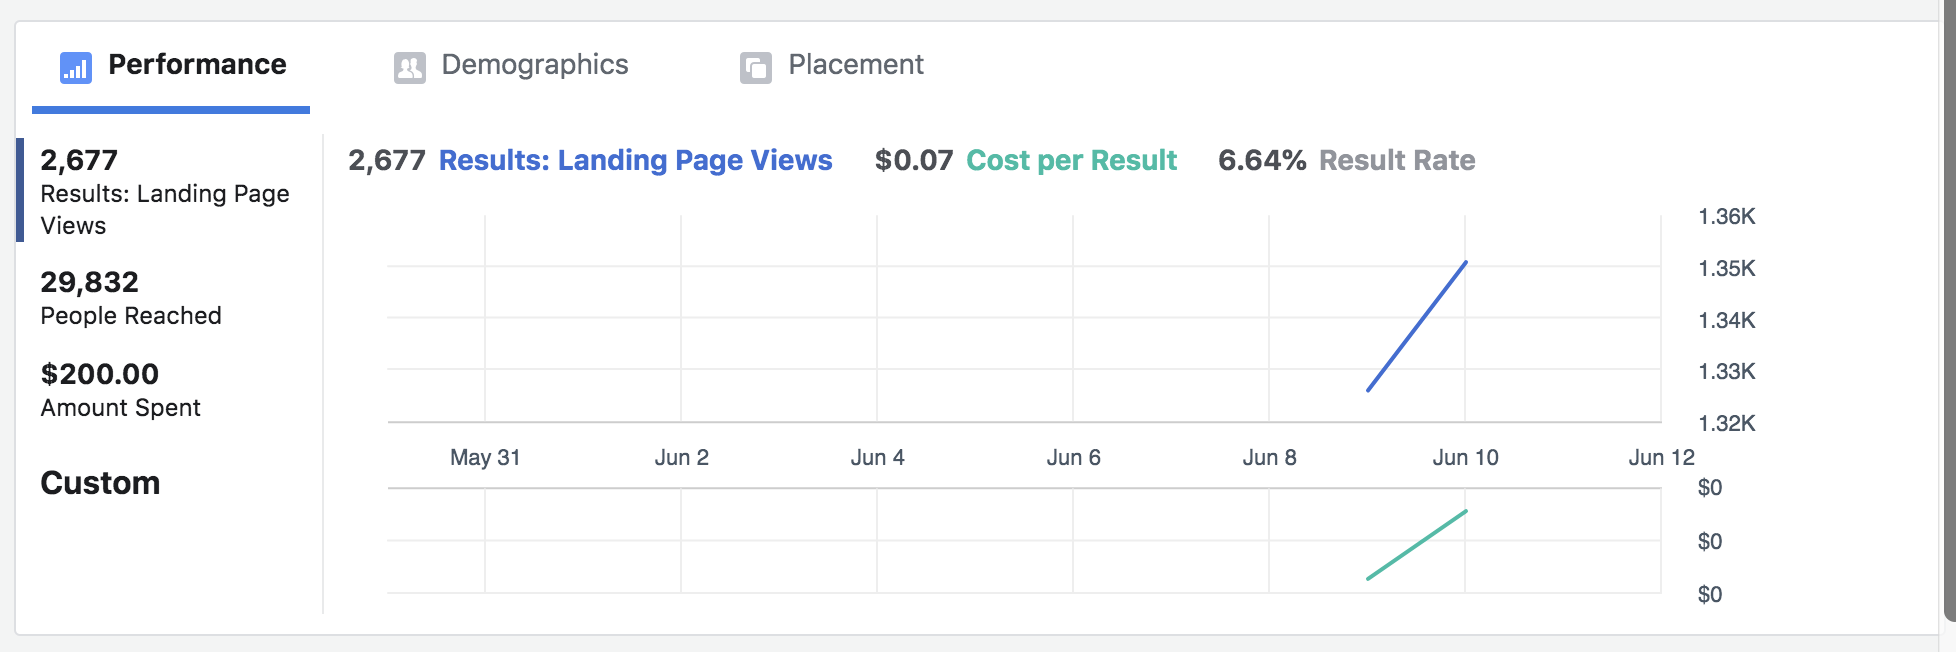 Results from a one-day ad with a $200.00 lifetime budget